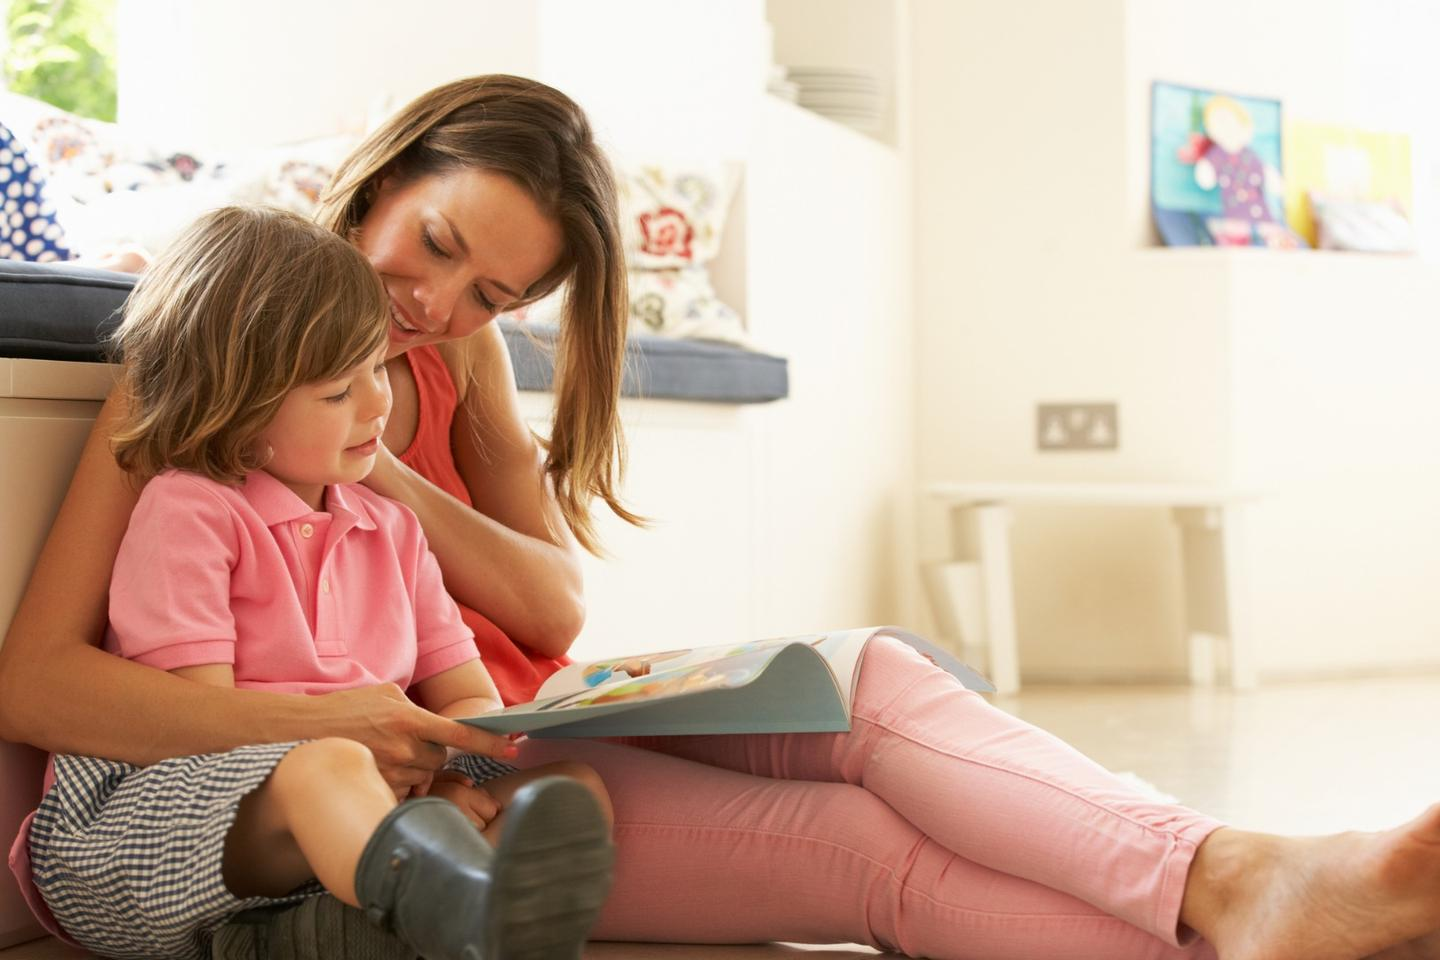 In a new study, less conversation and interaction occurred between parent and child when reading with an e-book compared to reading with a print book